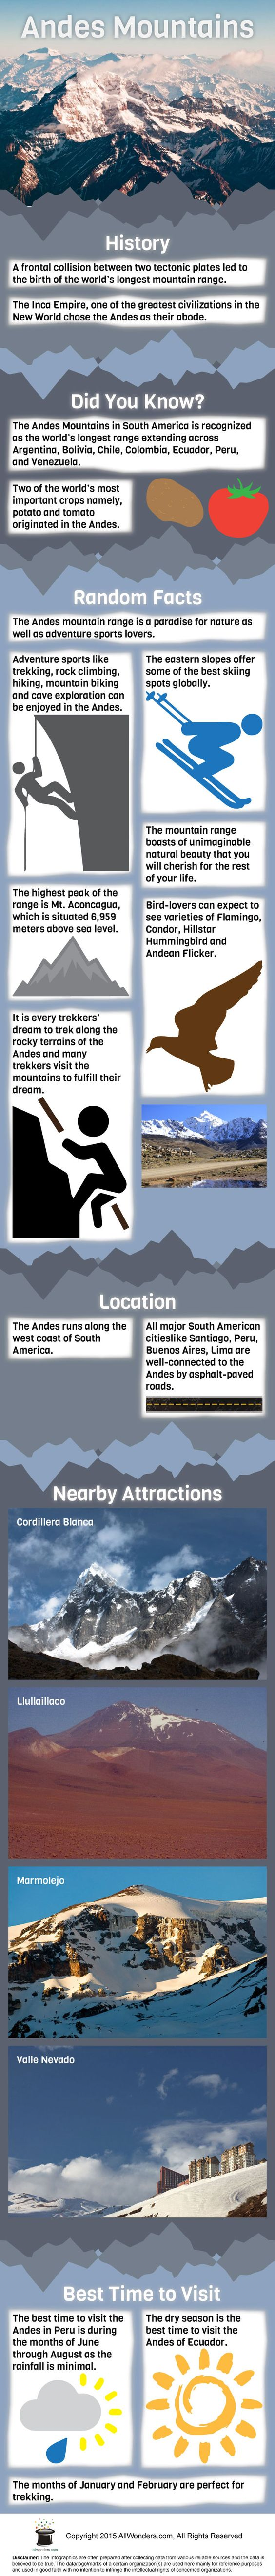 Andes Mountains Infographic